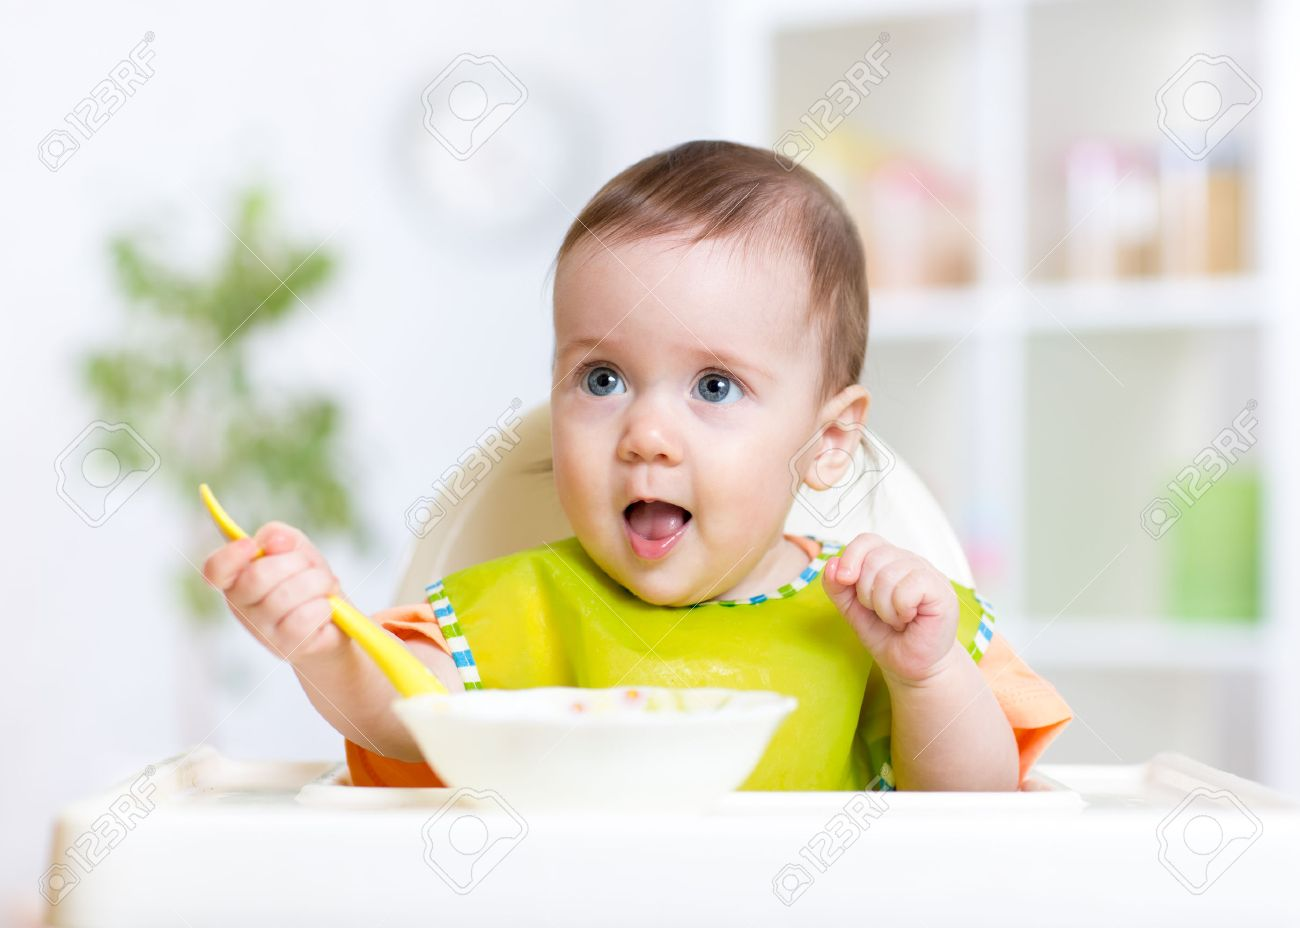 happy cute baby kid eating food itself with spoon stock photo